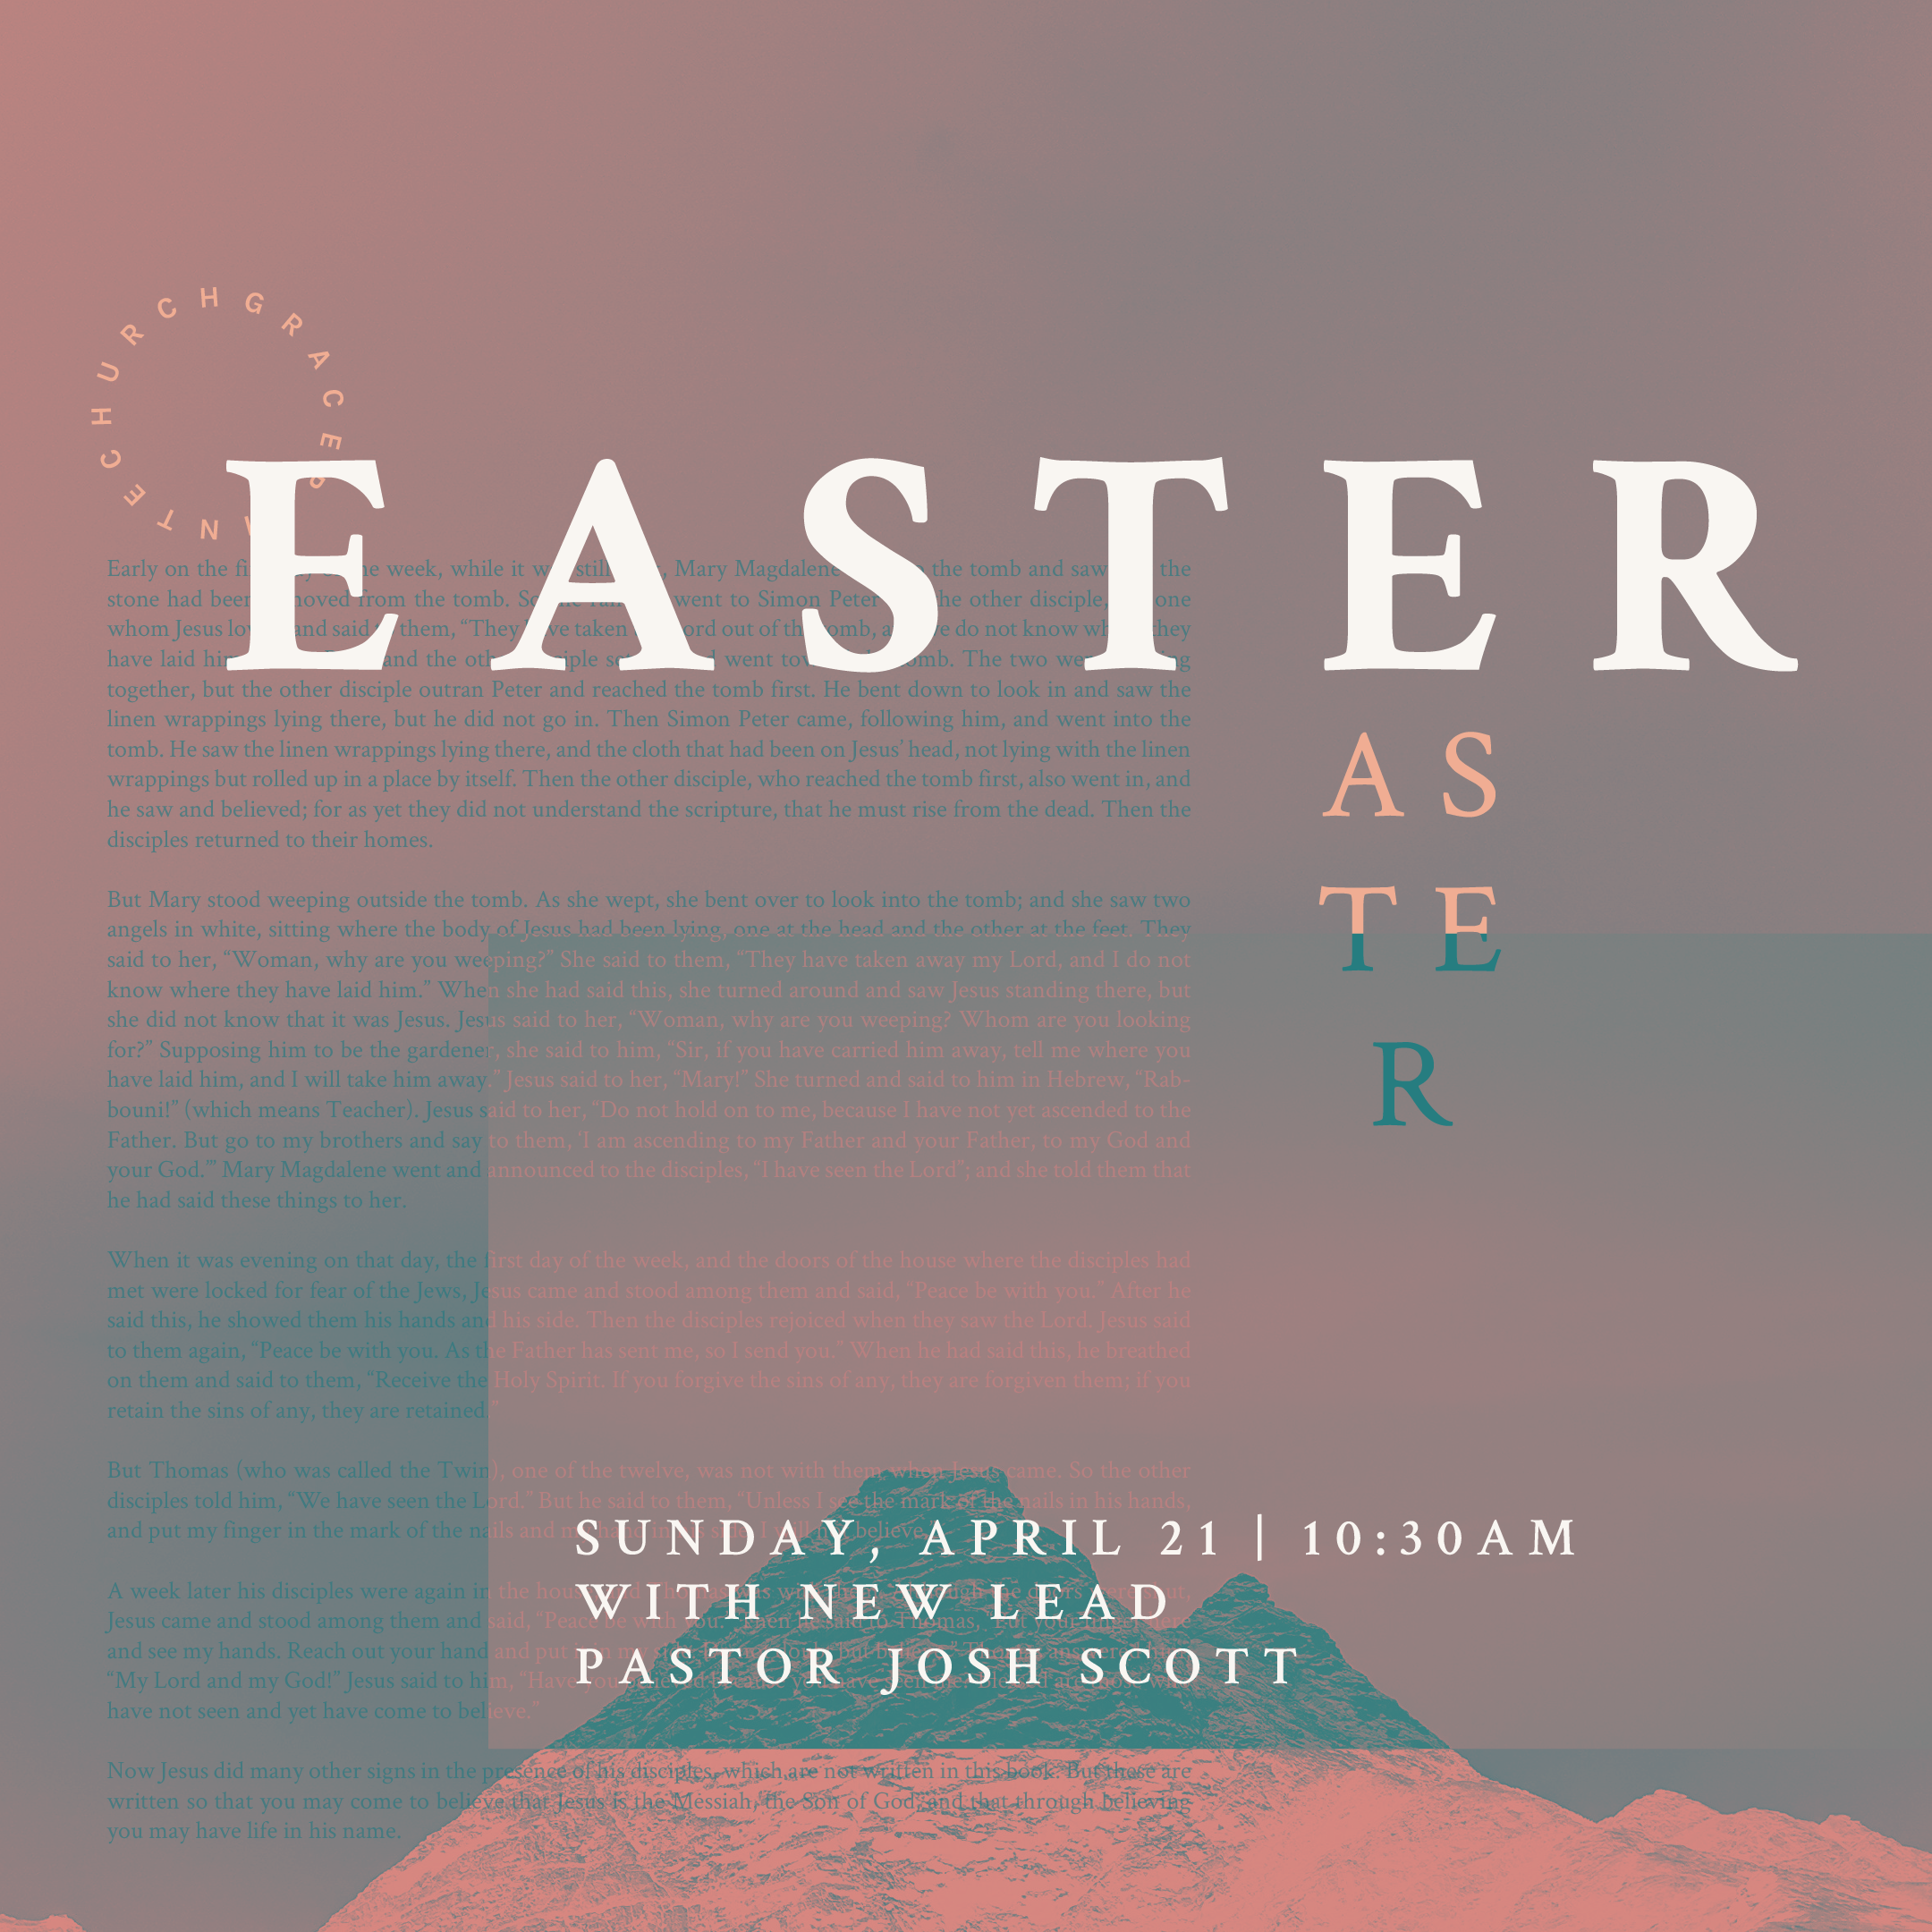 Easter at GracePointeInstagram@2x.png